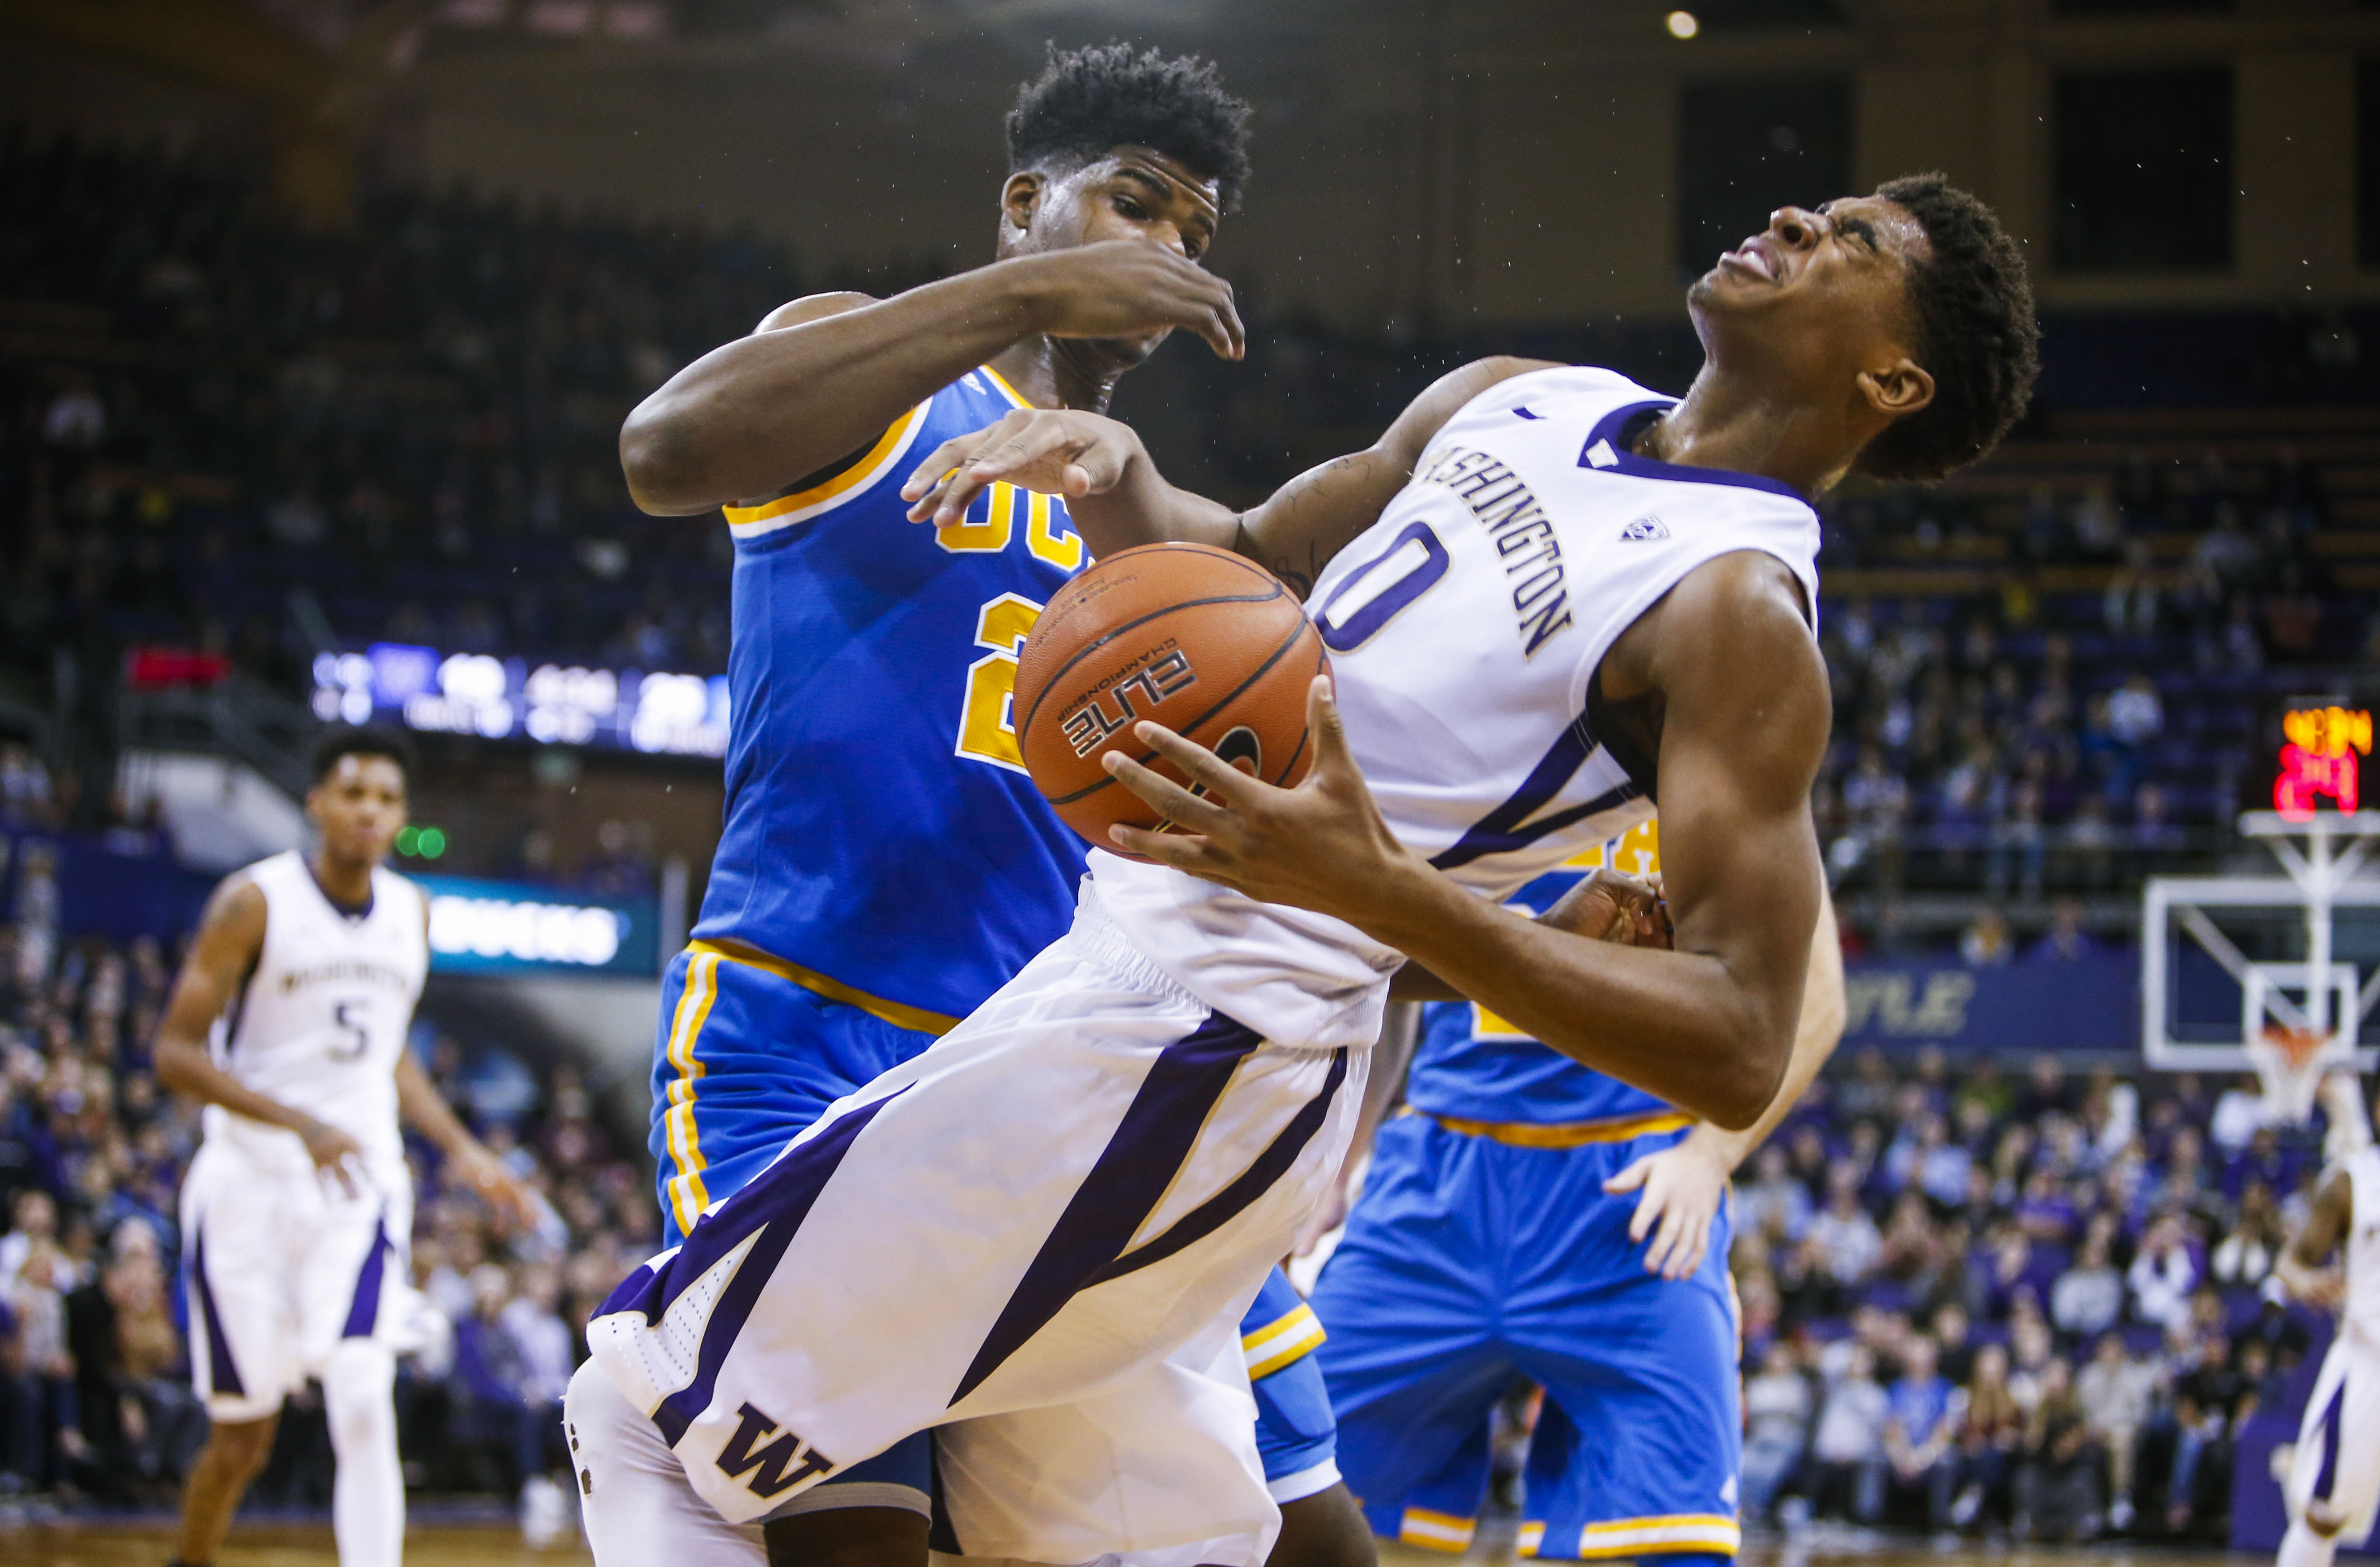 Washington forward Marquese Chriss (0) reacts after being fouled by UCLA forward Tony Parker (23) during the first half of an NCAA college basketball game Friday, Jan. 1, 2016, in Seattle. (AP Photo/Joe Nicholson)